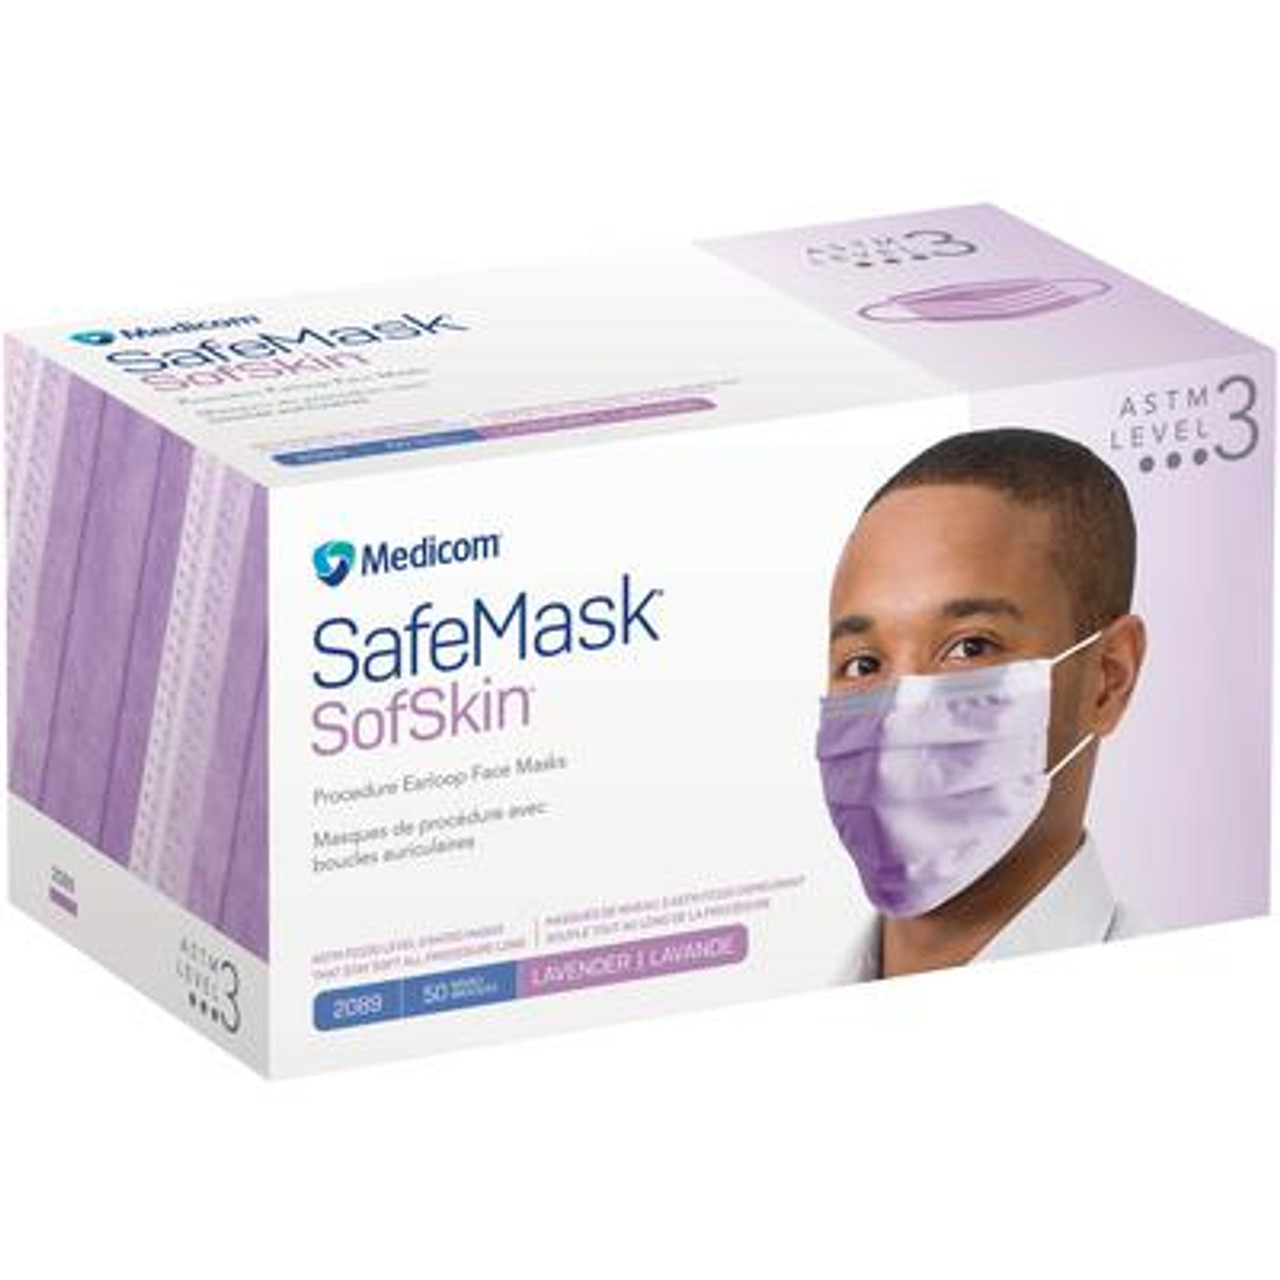 medicom surgical face mask